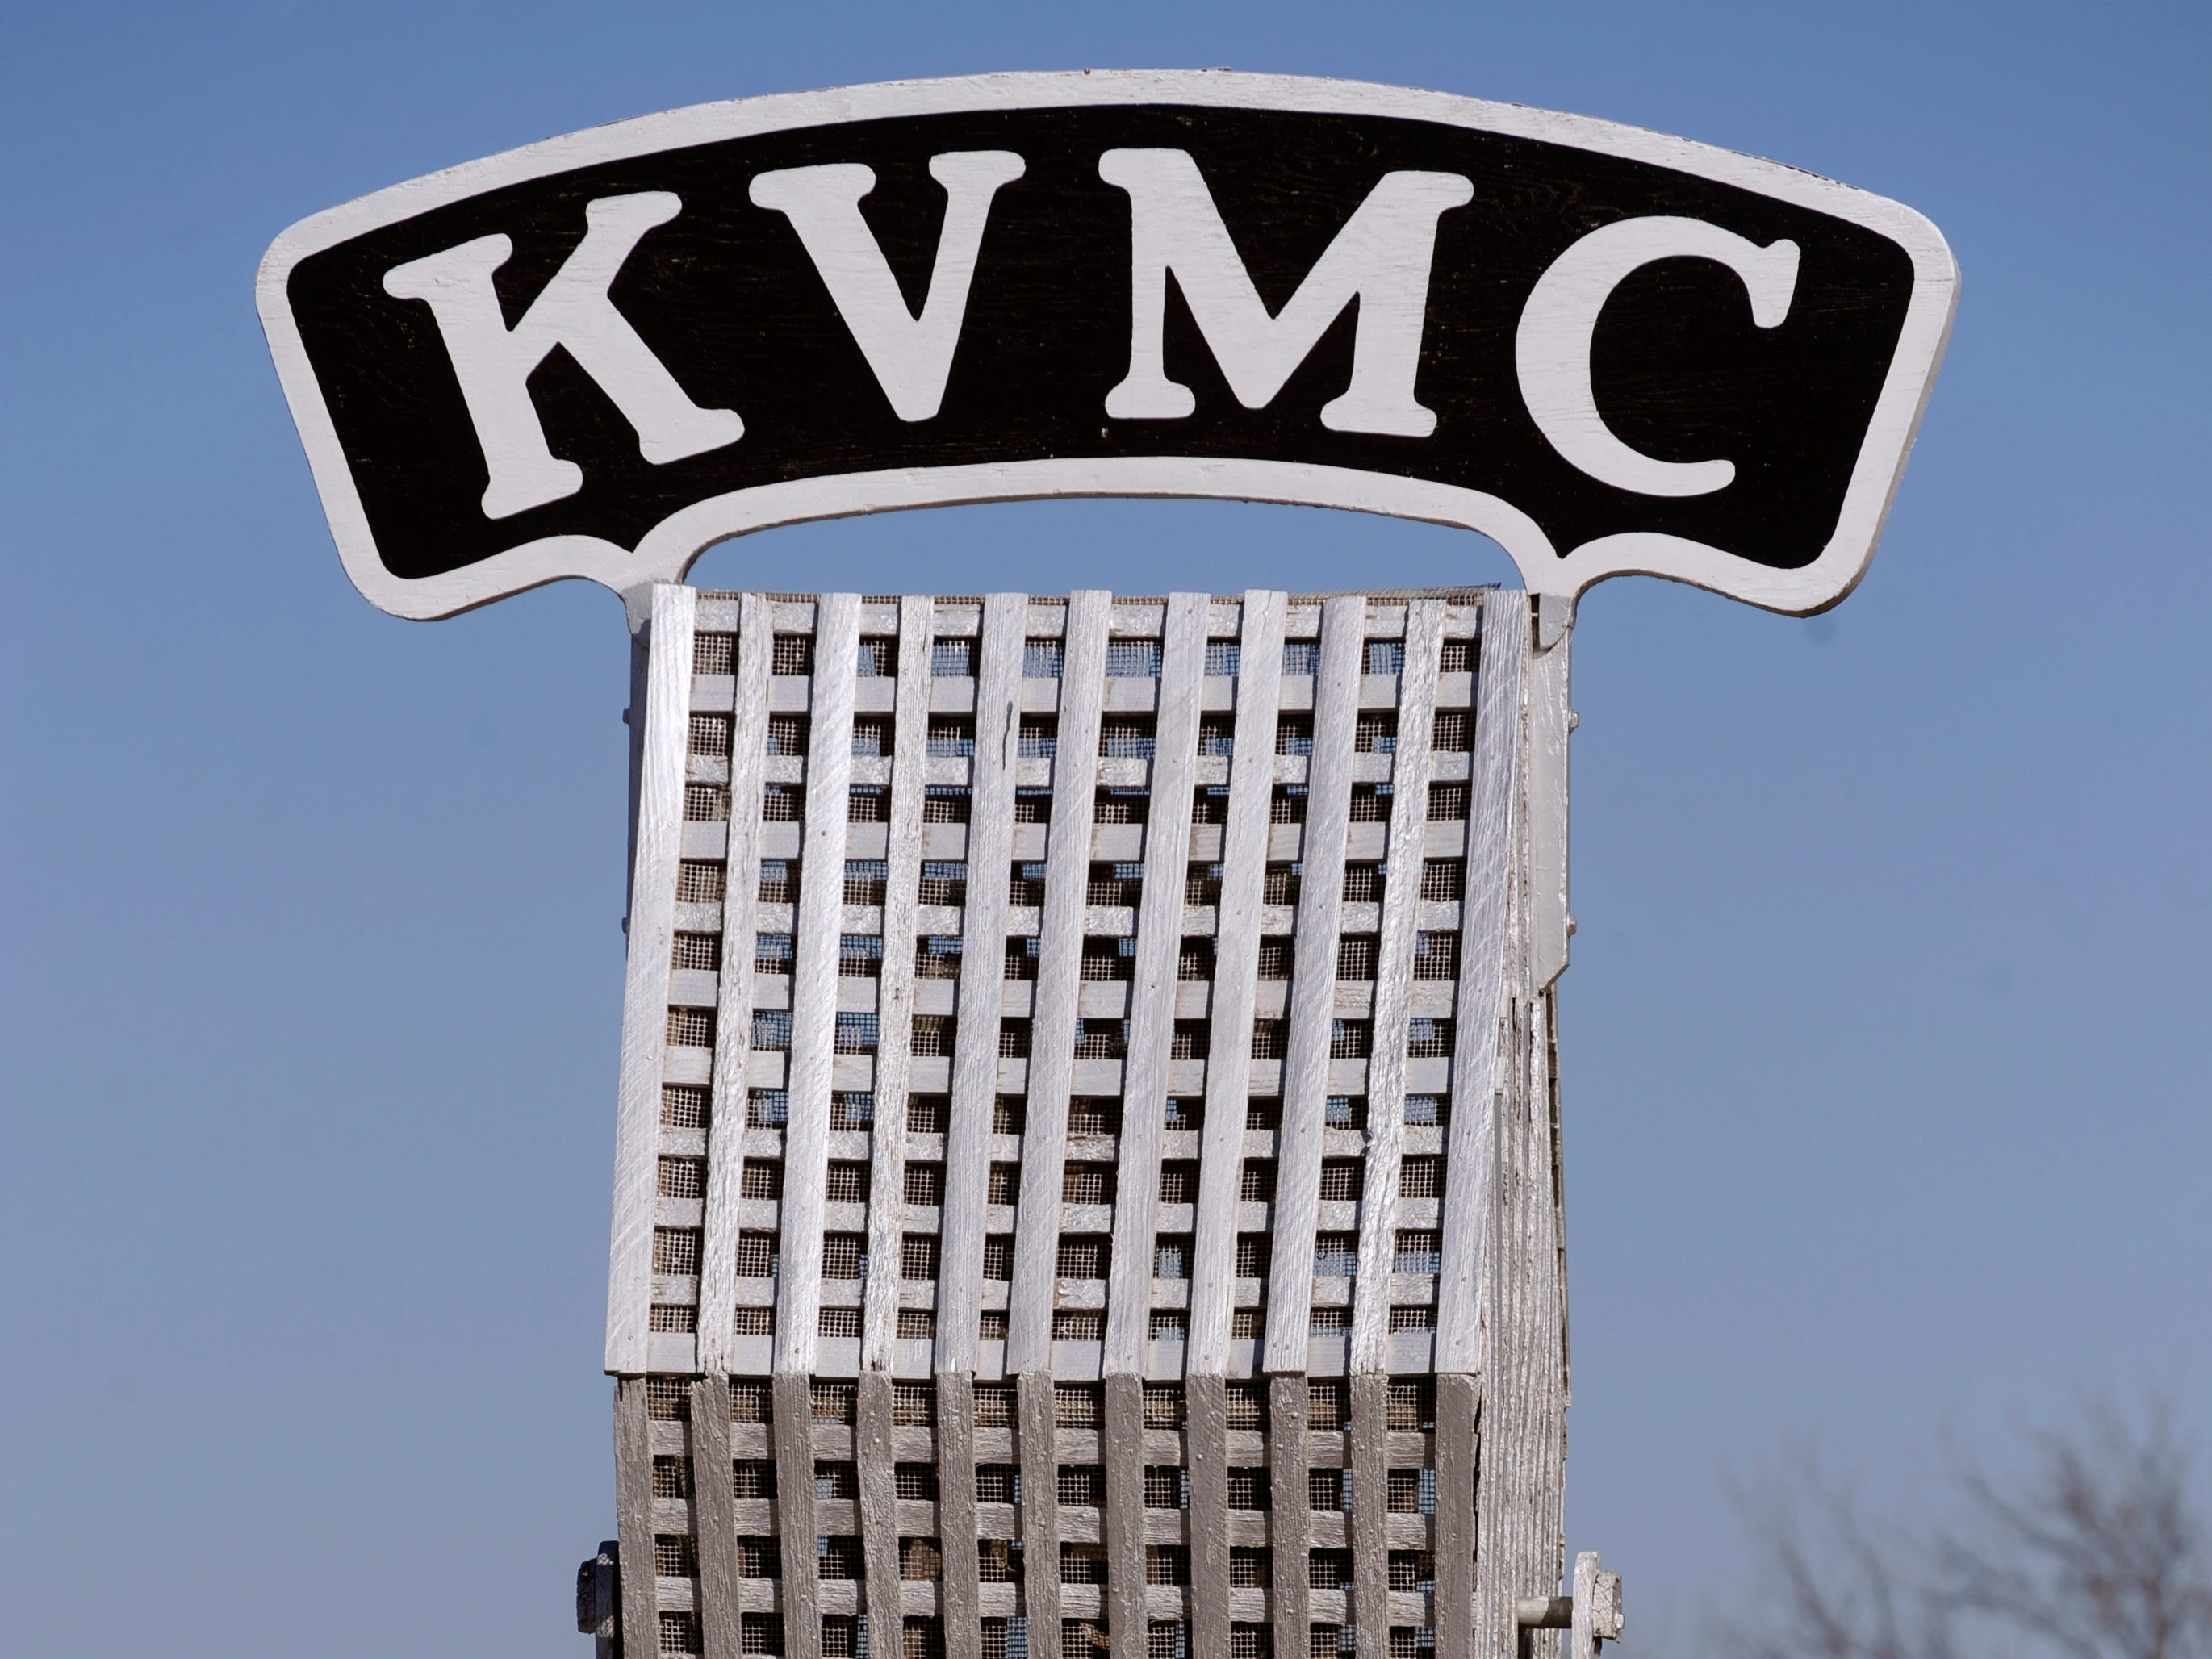 The oversized microphone outside of KVMC/KAUM in Colorado City Feb. 28, 2018. A Colorado City landmark, Jim Baum had owned the station since 1980. Baum died Dec. 16, 2018.